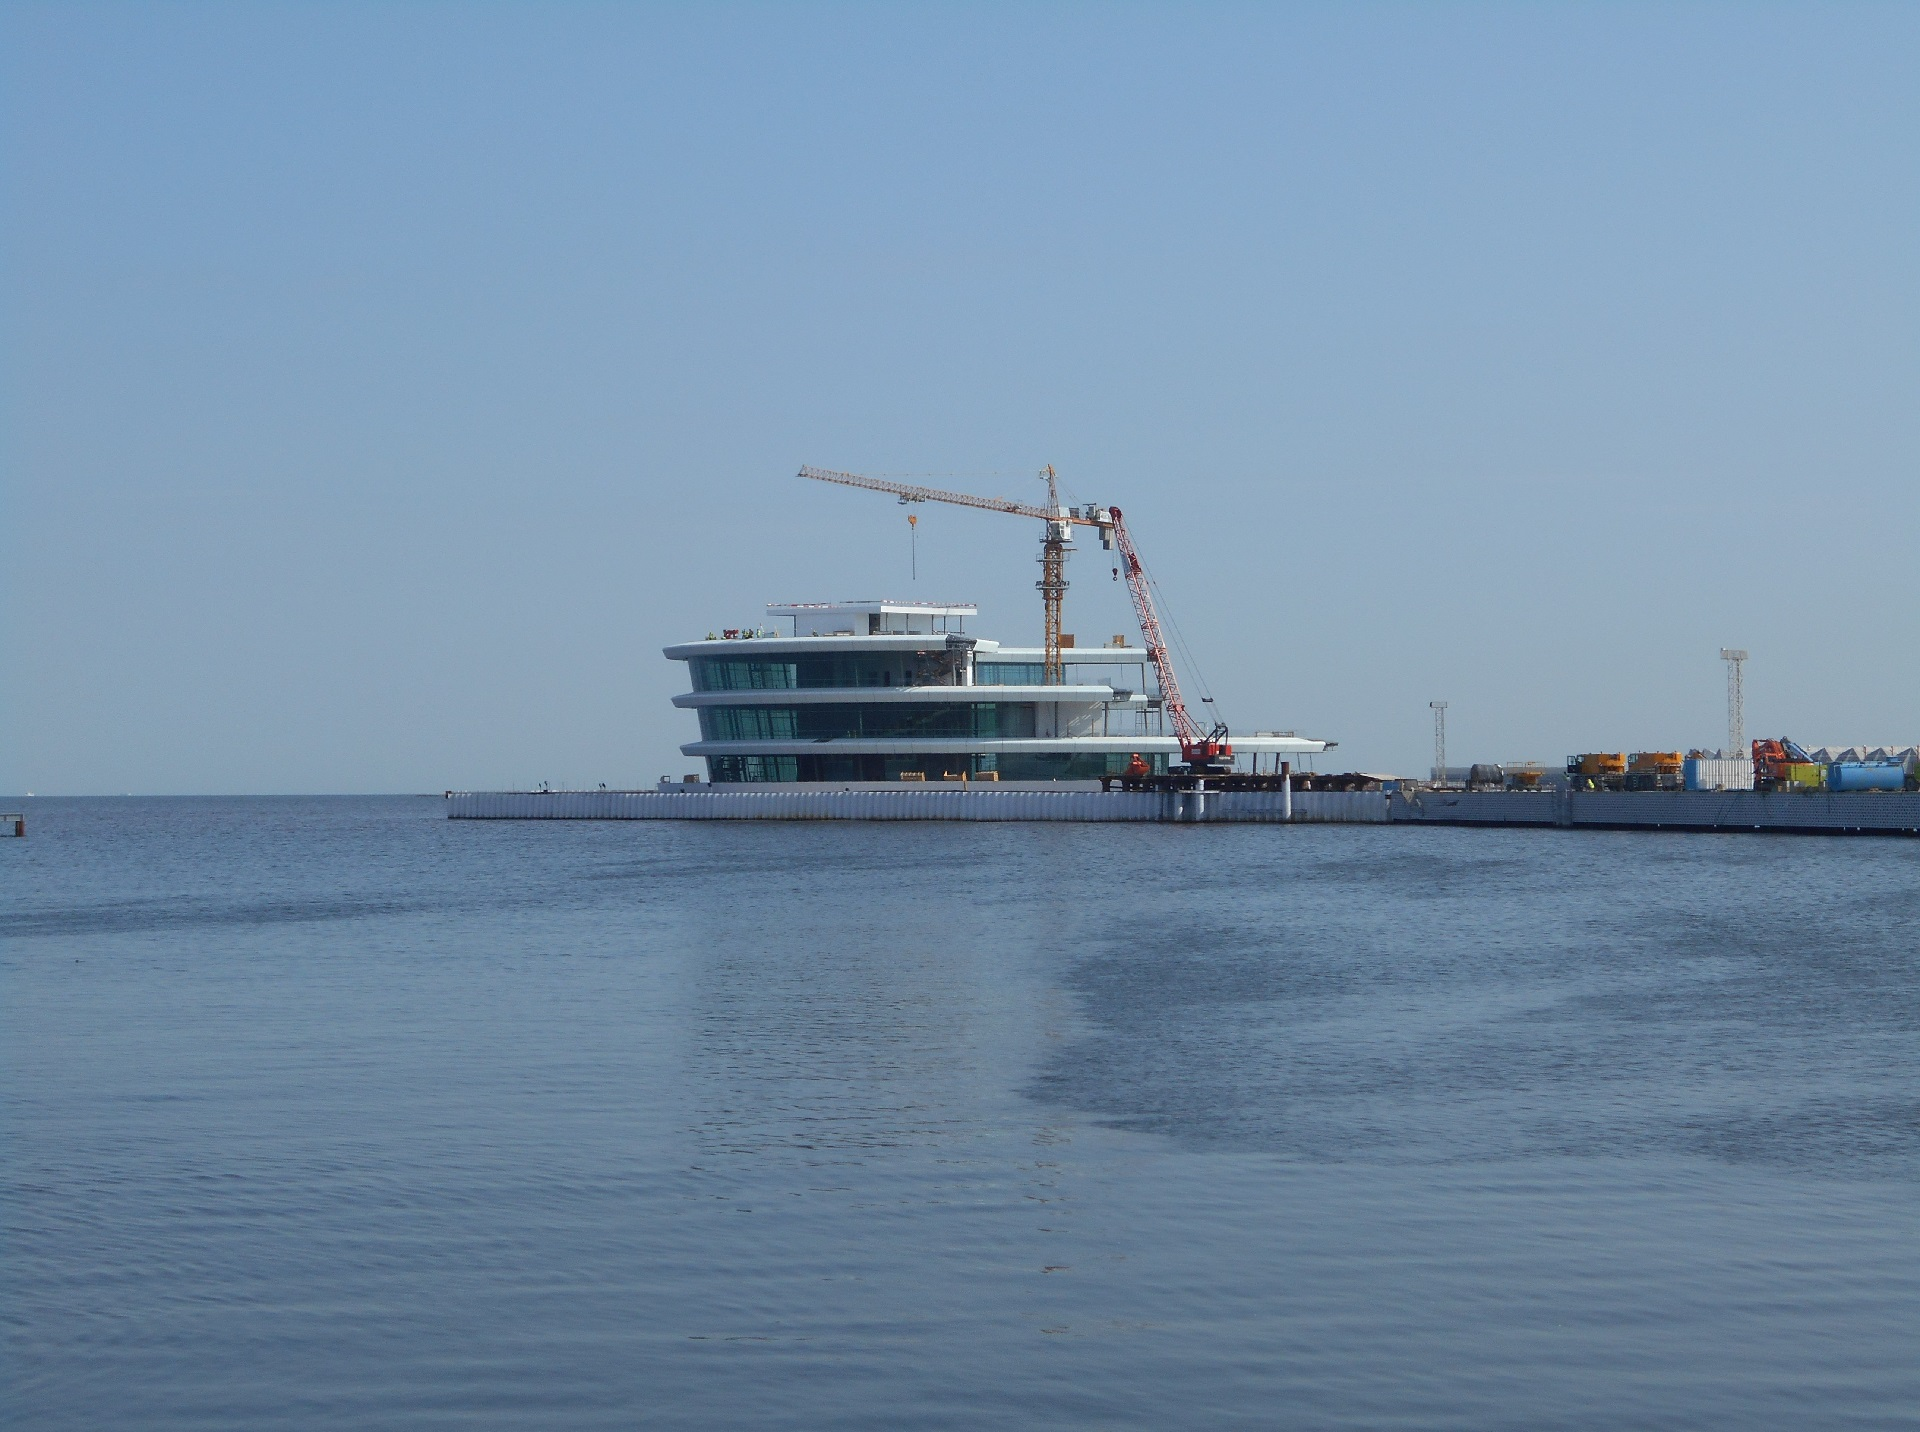 Construction of the Reinforced Concrete Package of offshore Leisure Facility in Boulevard Area.